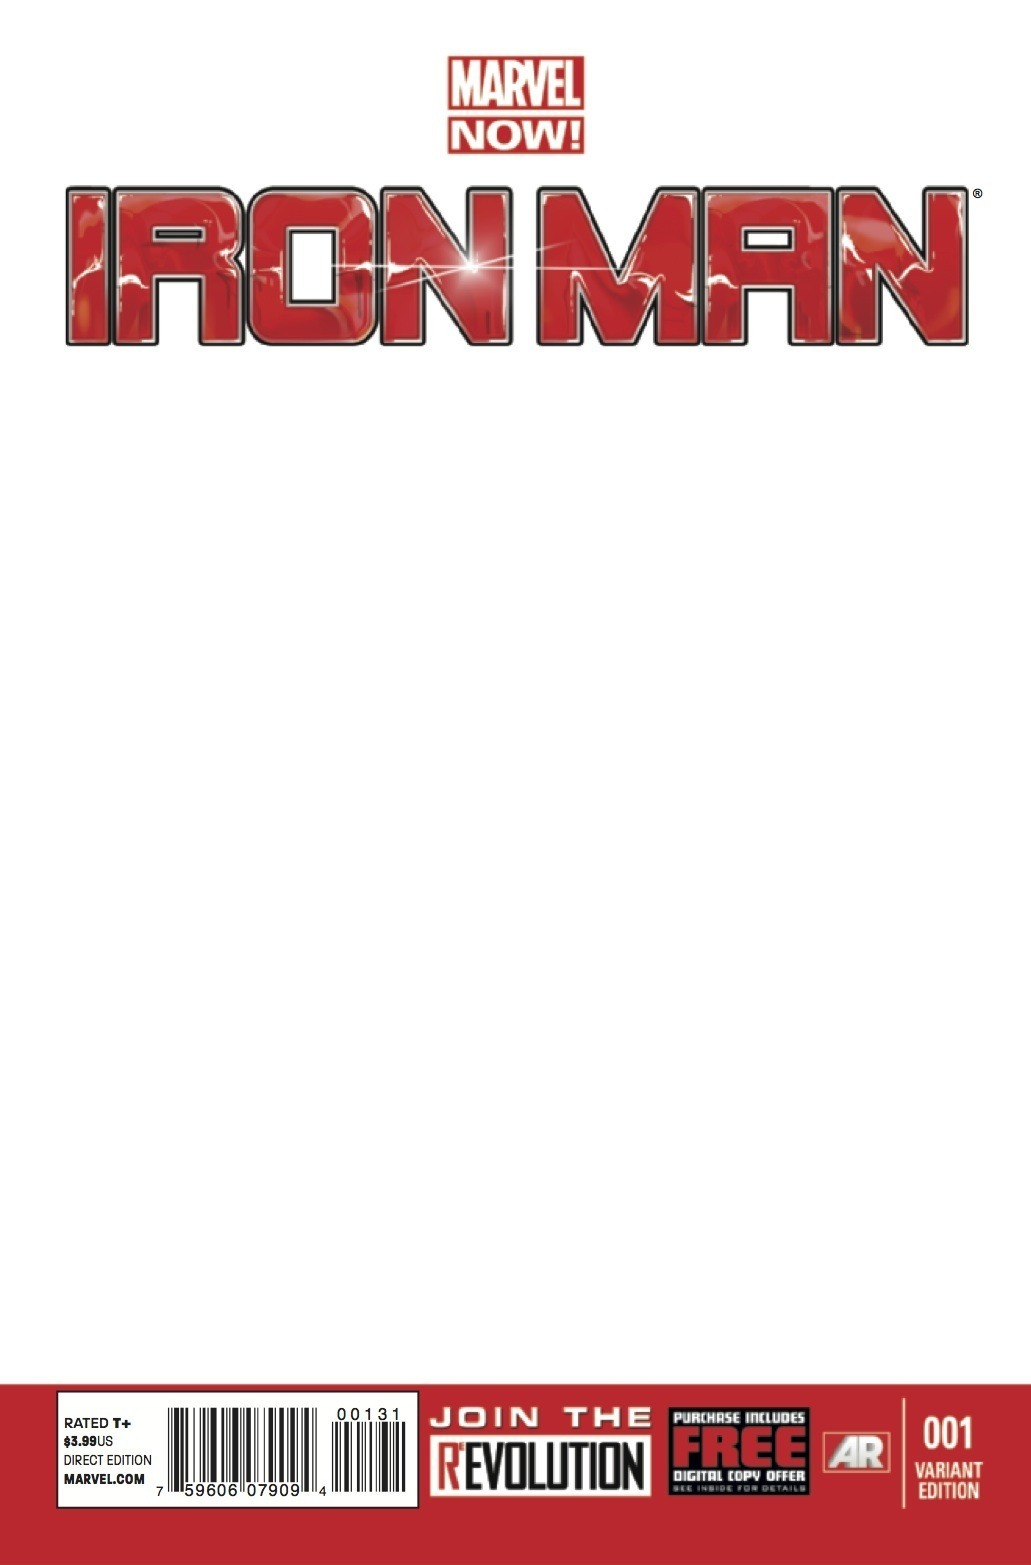 Marvel Comic Book Cover Template : Image iron man vol blank variant g marvel